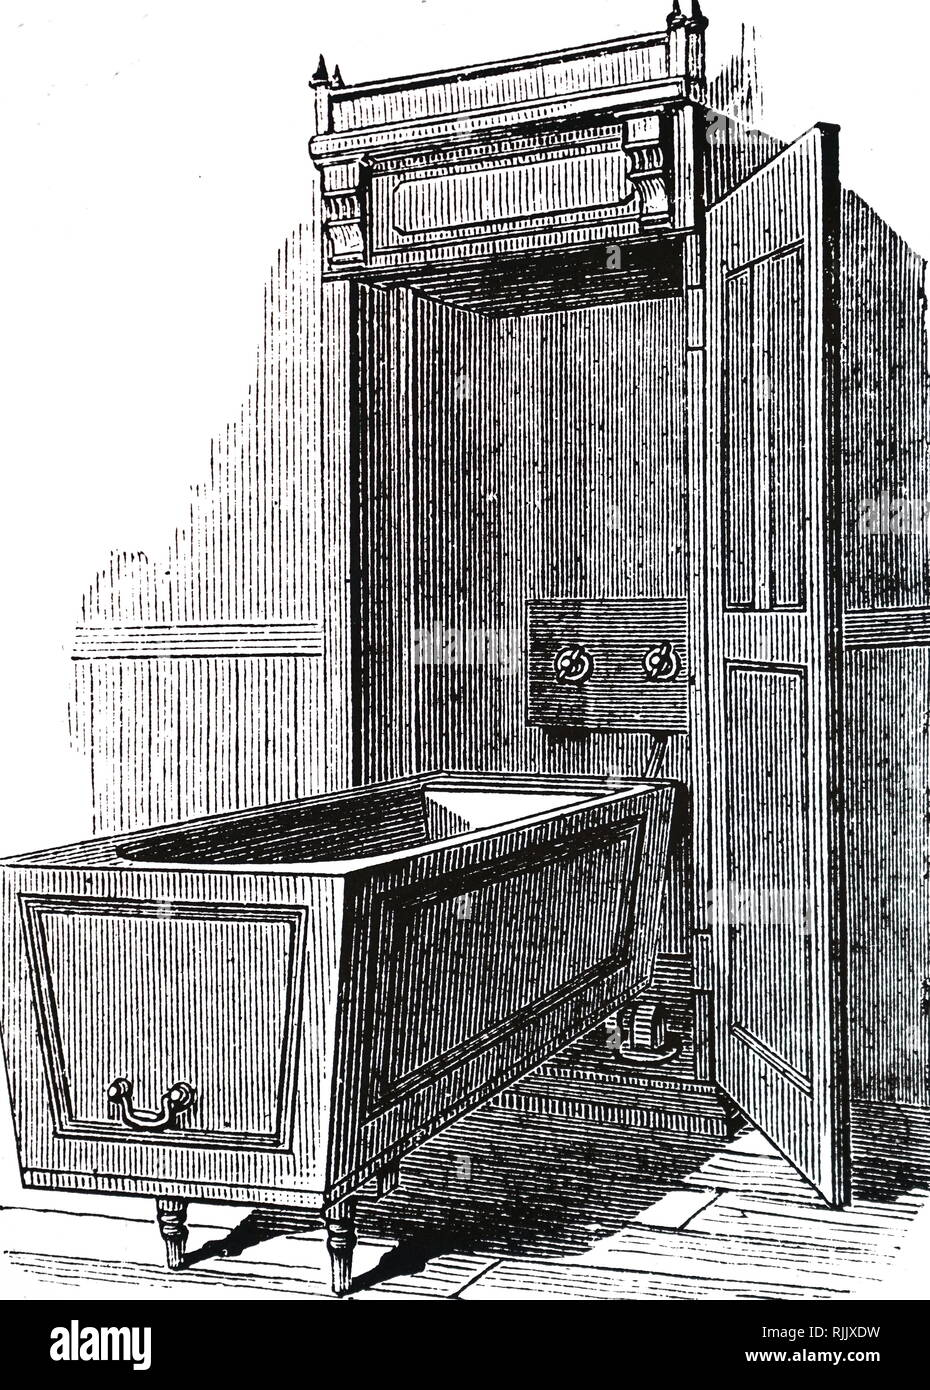 An engraving depicting a bath with one end mounted on a pivot so that it could be stood on end and be concealed in a cupboard when not in use. Dated 19th century - Stock Image